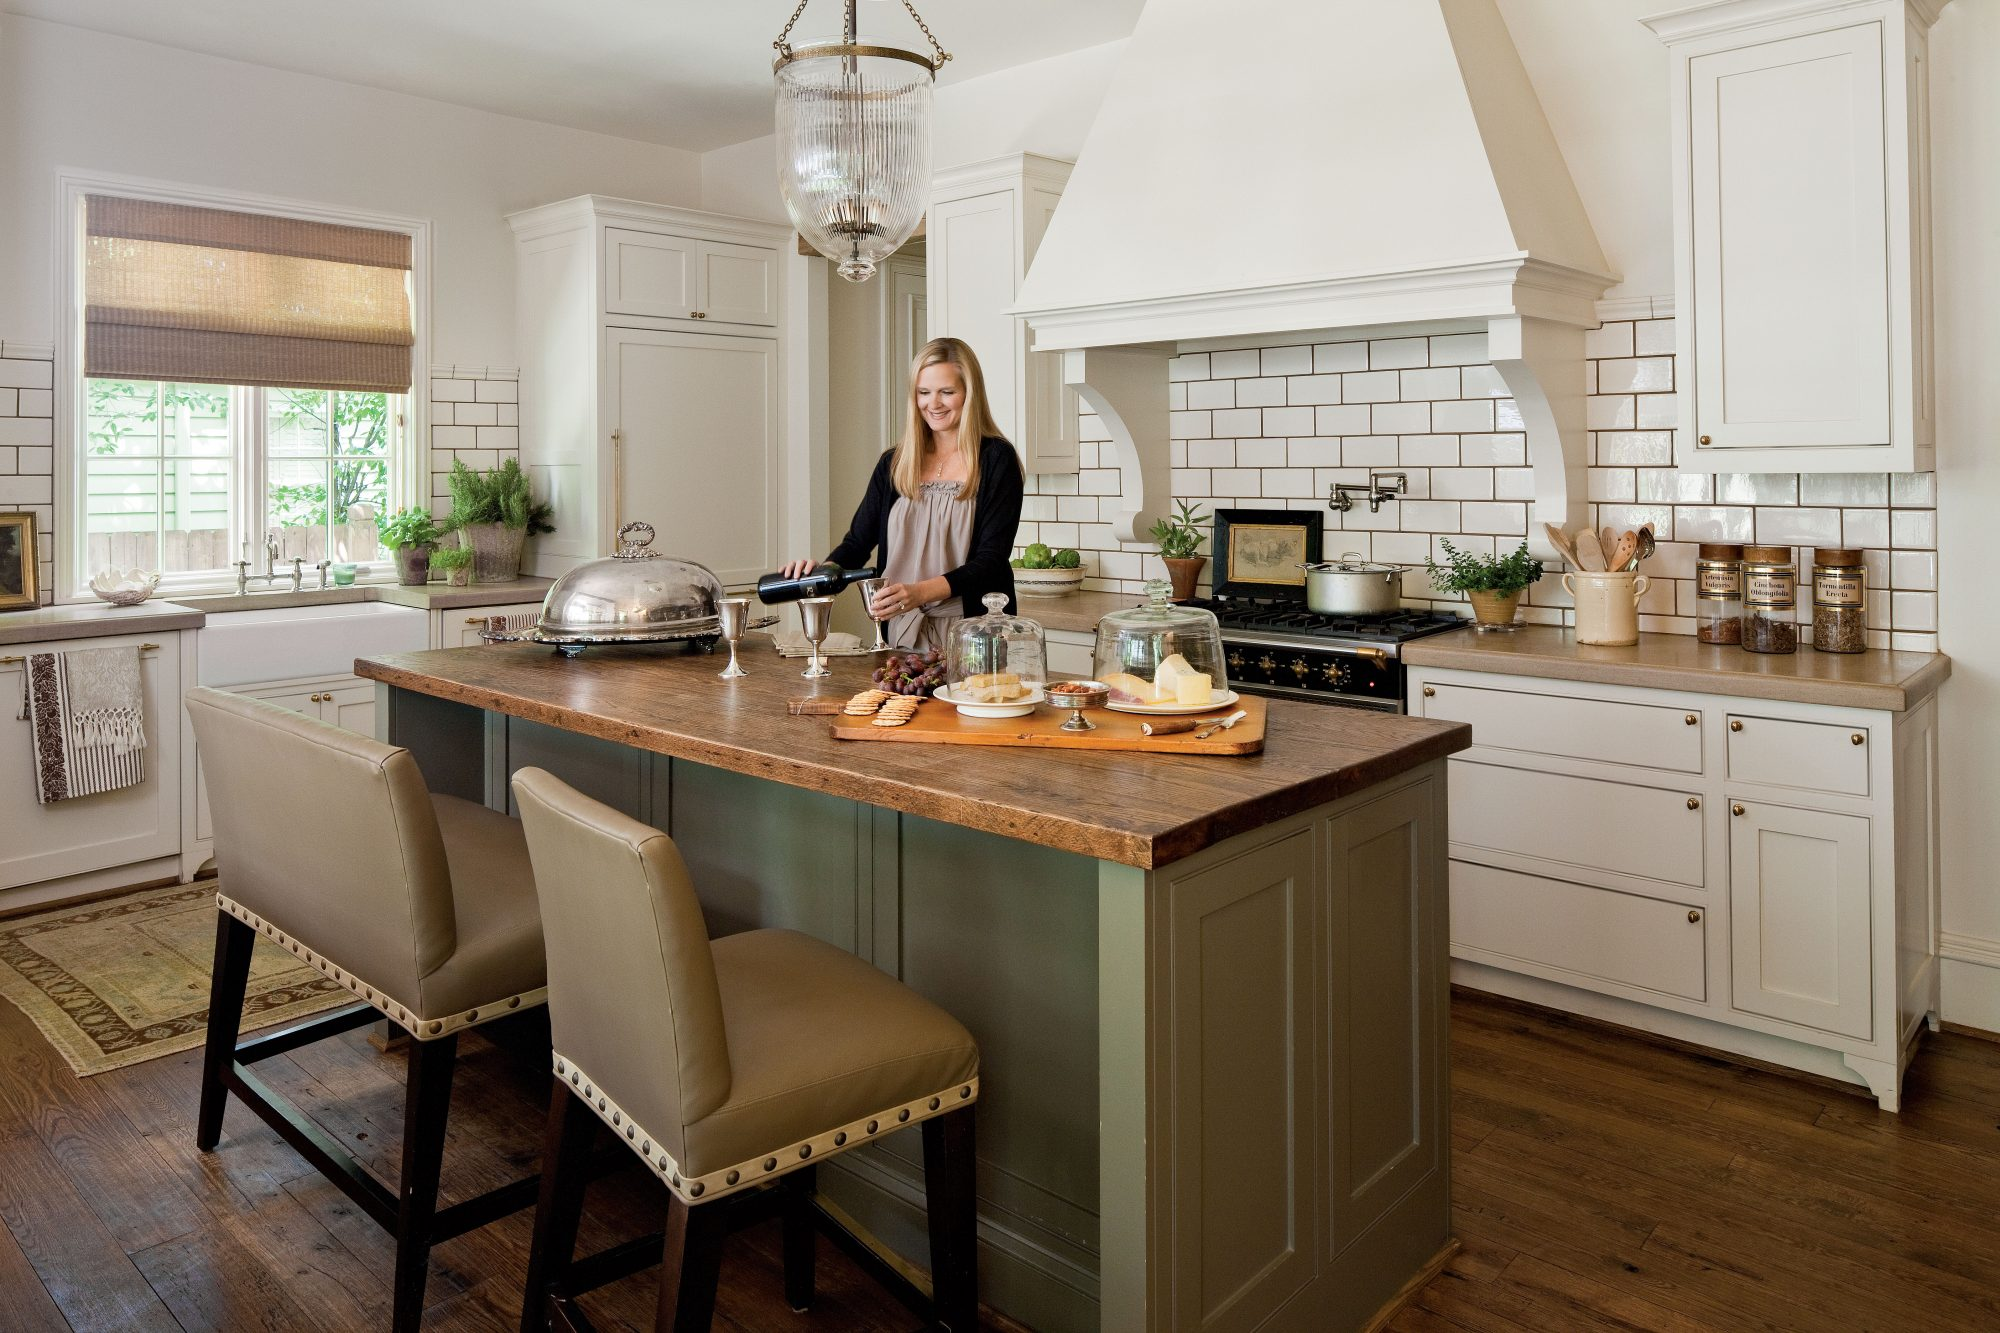 Dream kitchen design ideas southern living for Southern style kitchen ideas